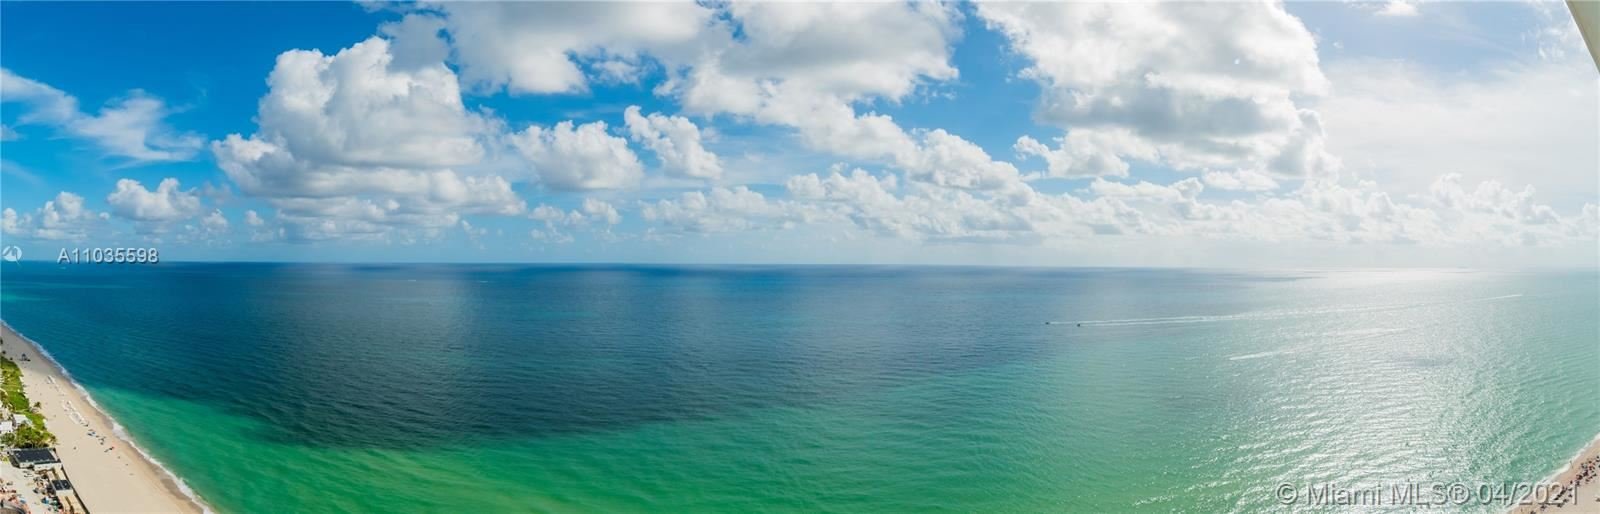 17749 COLLINS AVE #3502, Sunny Isles, FL 33160 - #: A11035598